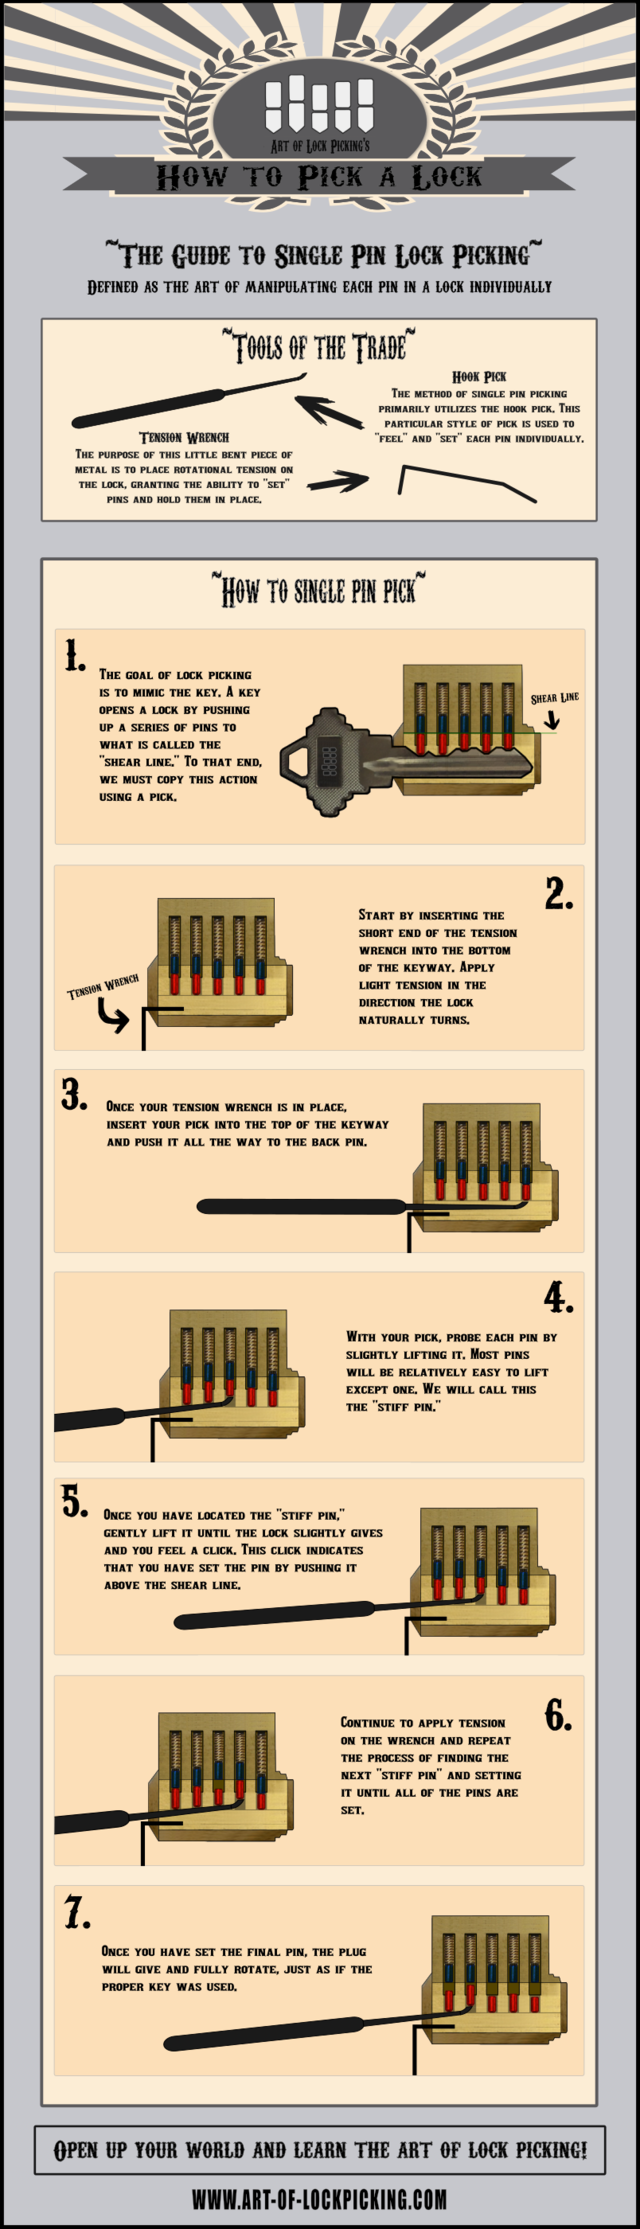 Single pin picking infographic